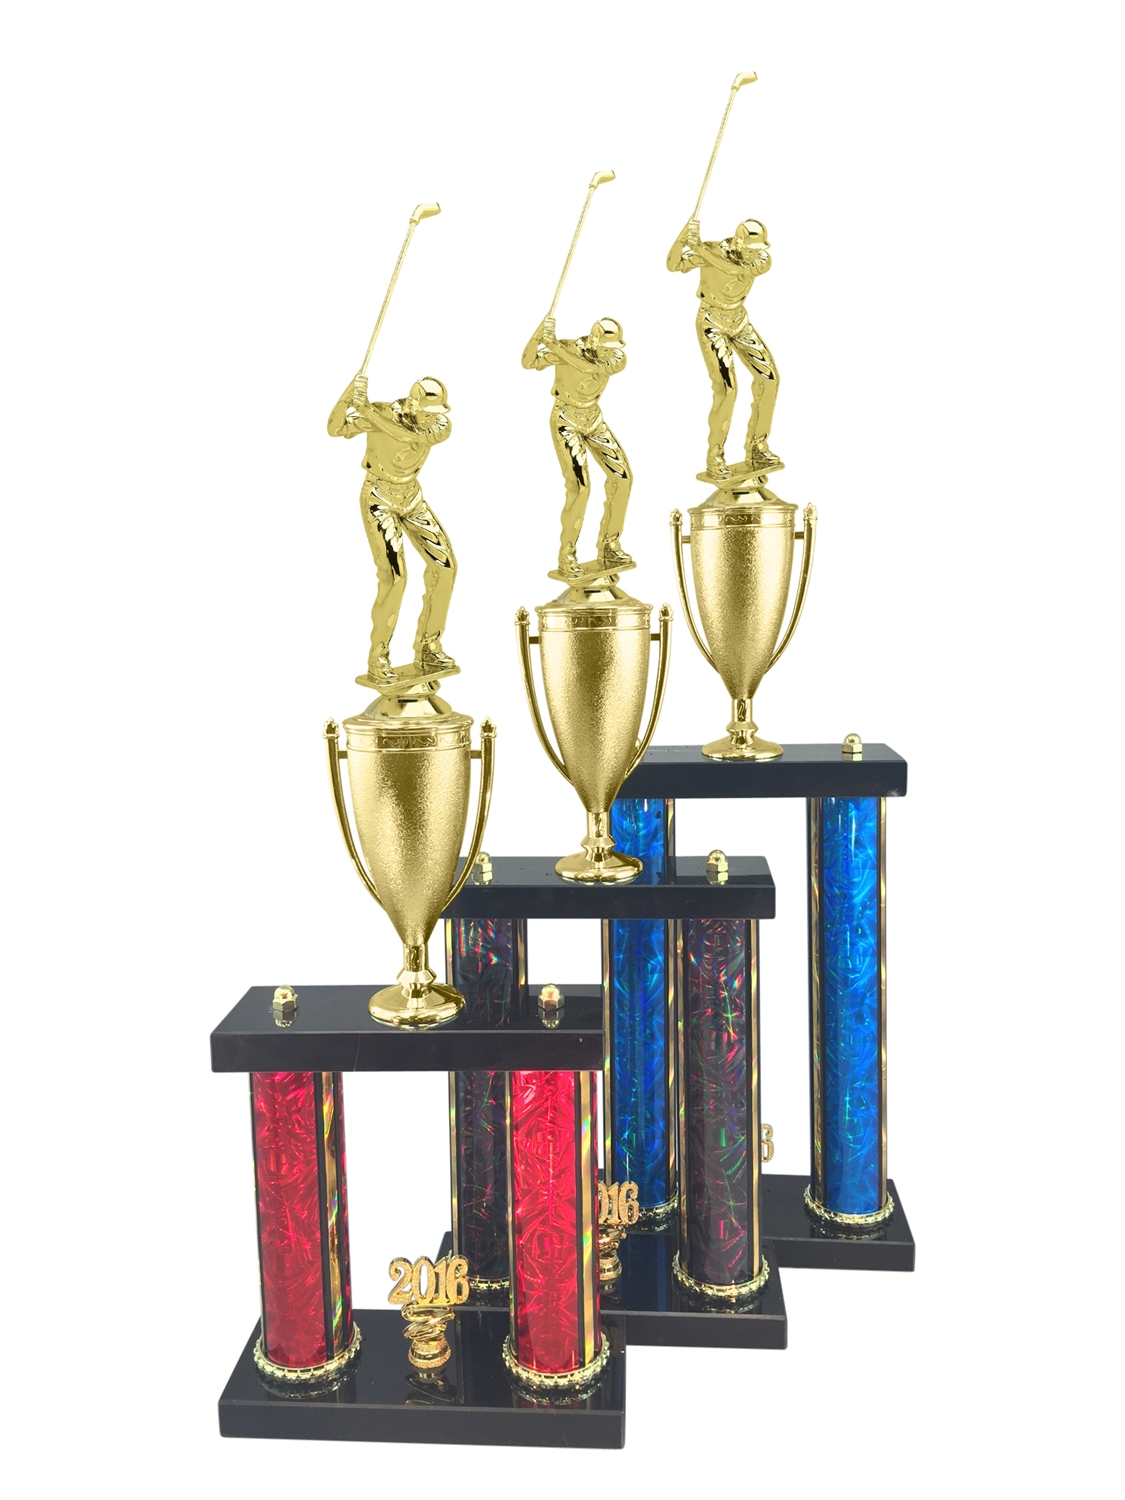 Male Golf Trophy Available in 11 Color & 3 Size Options